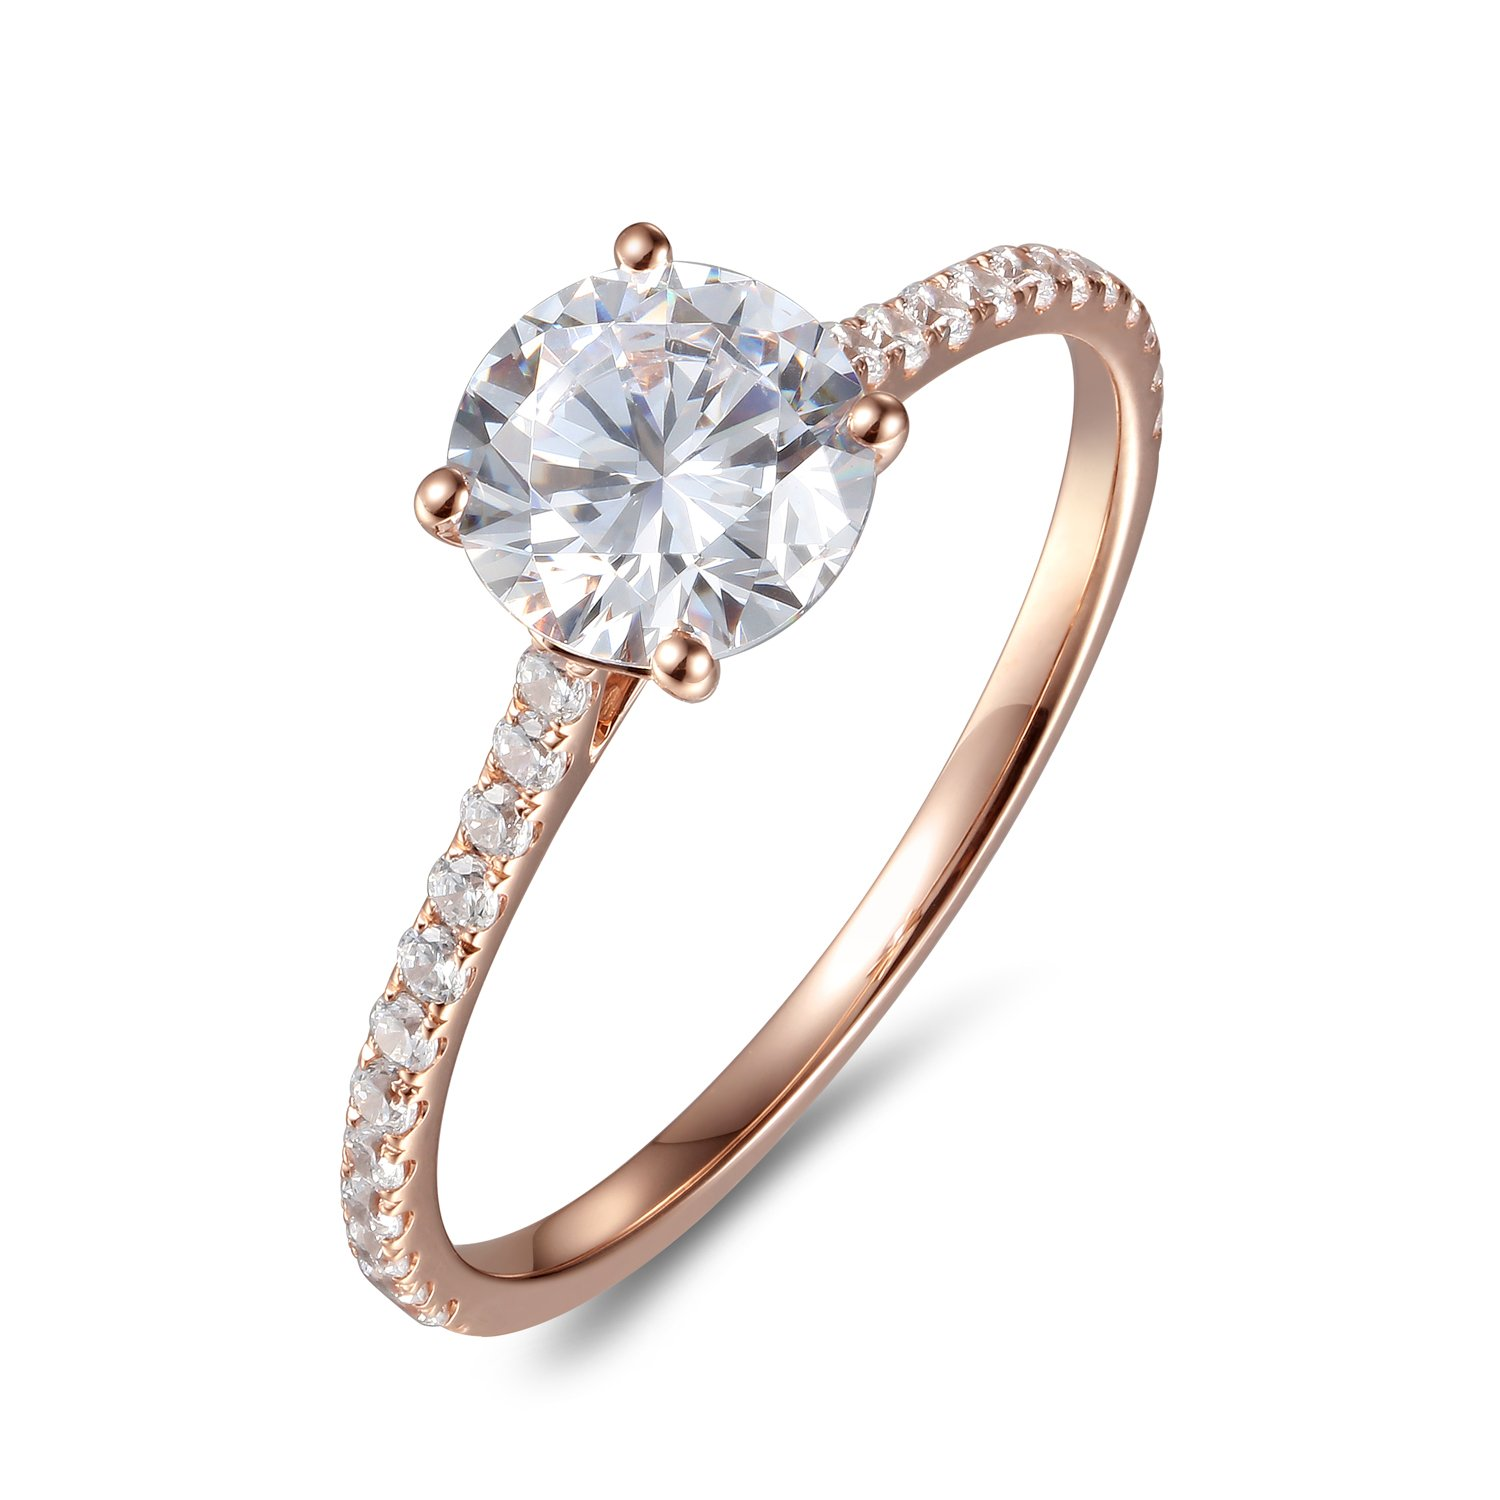 5e047396d5b6e Lamrowfay 1Ct Halo Solitaire Cubic Zirconia Promise Engagement Ring in 14K  Rose Gold White Gold Yellow Gold, 1.70cttw